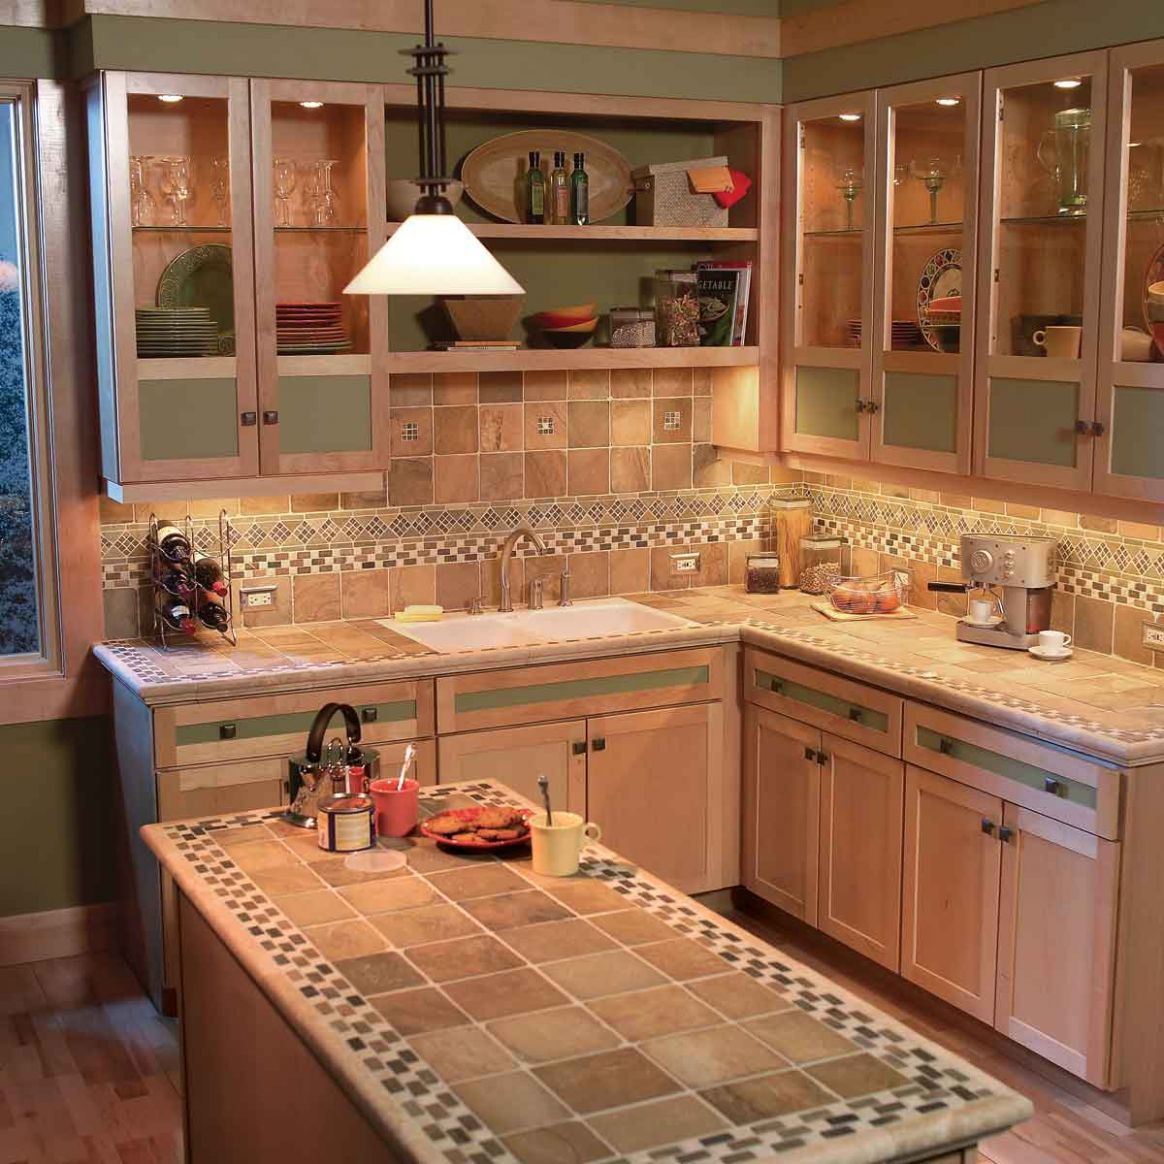 10 Small Kitchen Ideas to Maximize Space! | The Family Handyman - kitchen ideas to save space